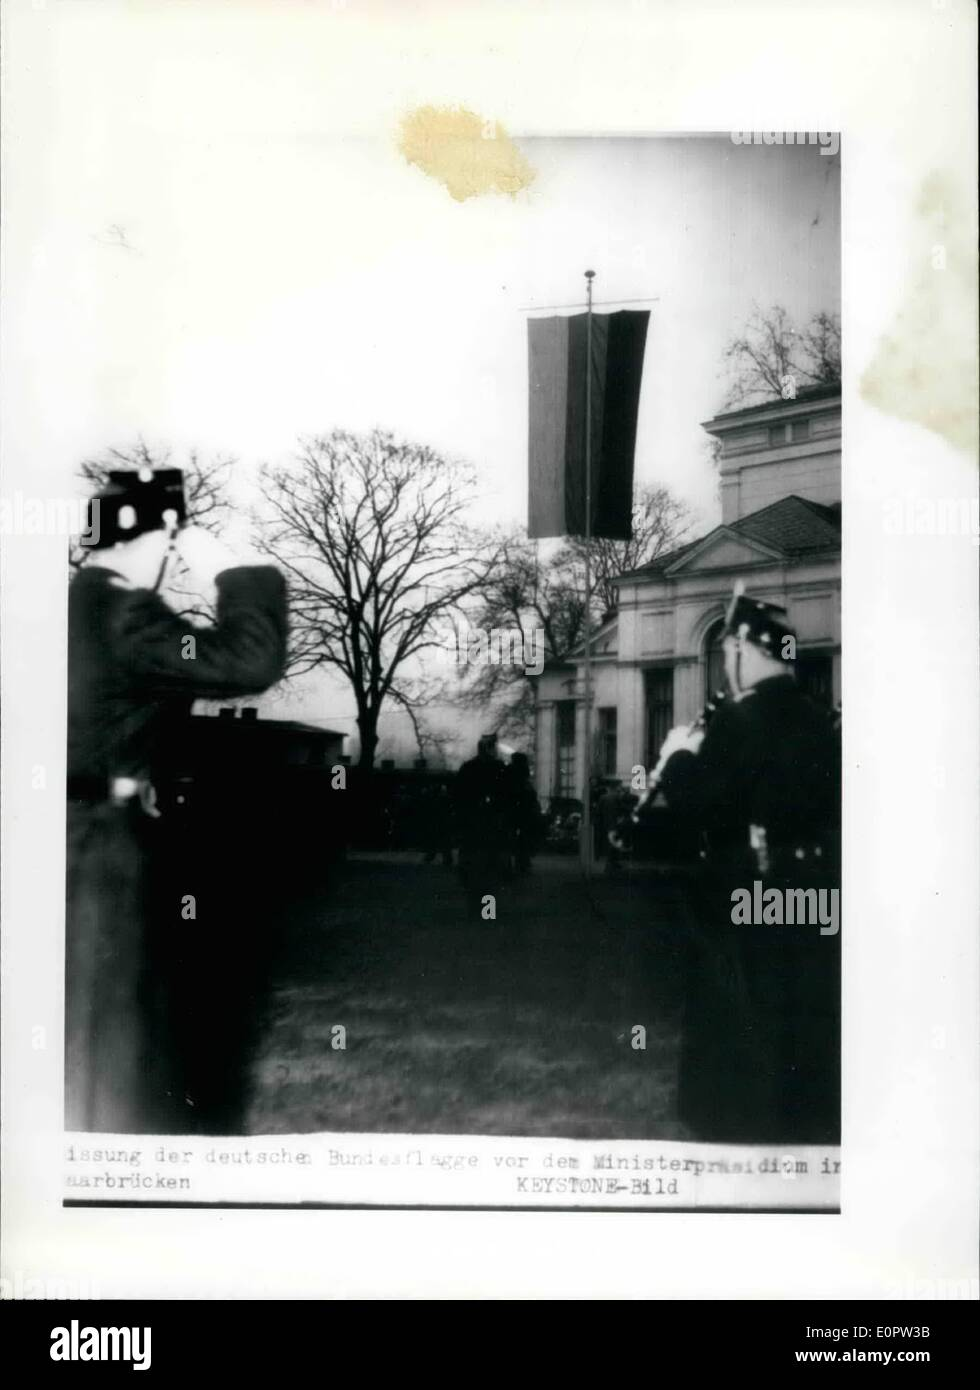 Jan. 01, 1957 - The German flag at the Saar: Since this morning January 1st 57 when the Saar returned to Germany the German Black-red gold flag waves in front of the govern ment building at saarbruecken. Picture by wire from saarbruecken of Jan. 1st 57. - Stock Image